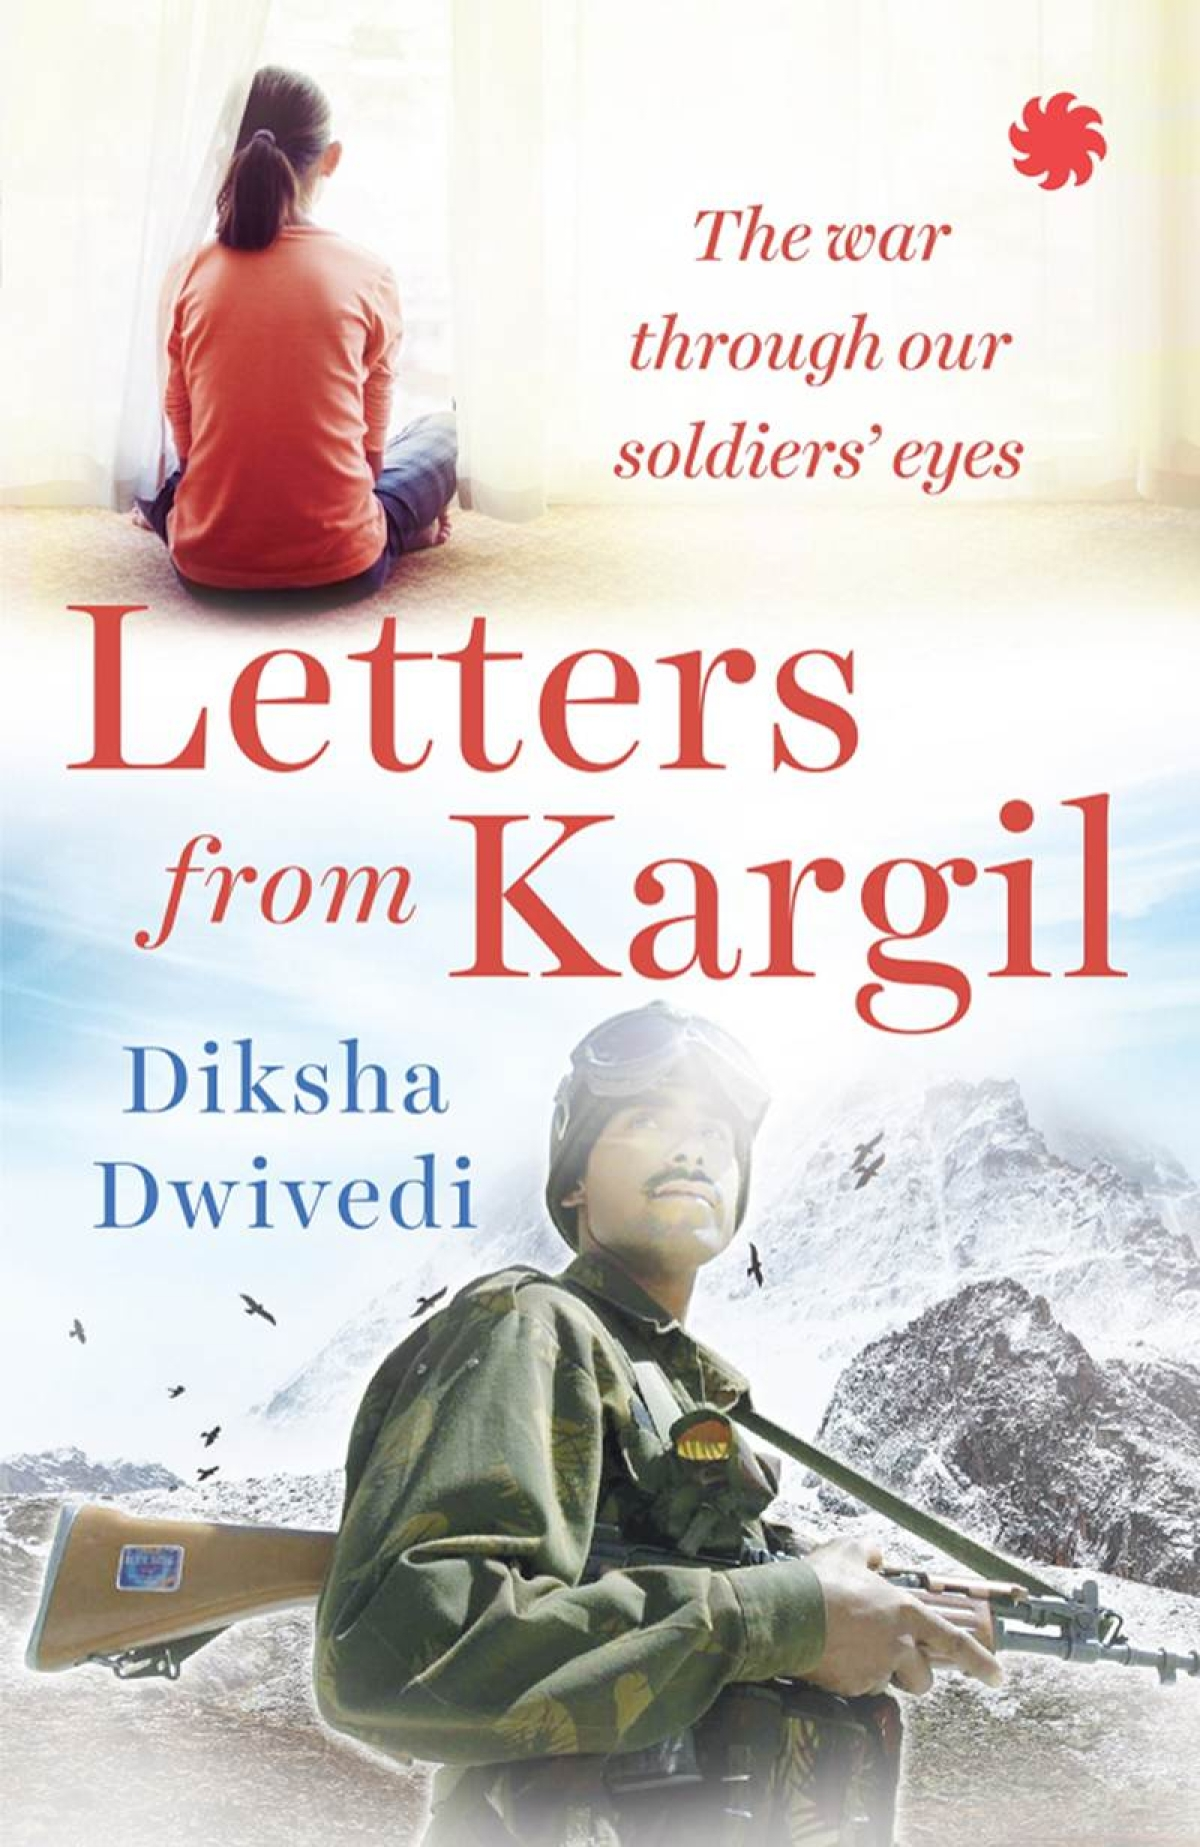 Letters from Kargil: The Kargil War Through Our Soldiers' Eyes- Review